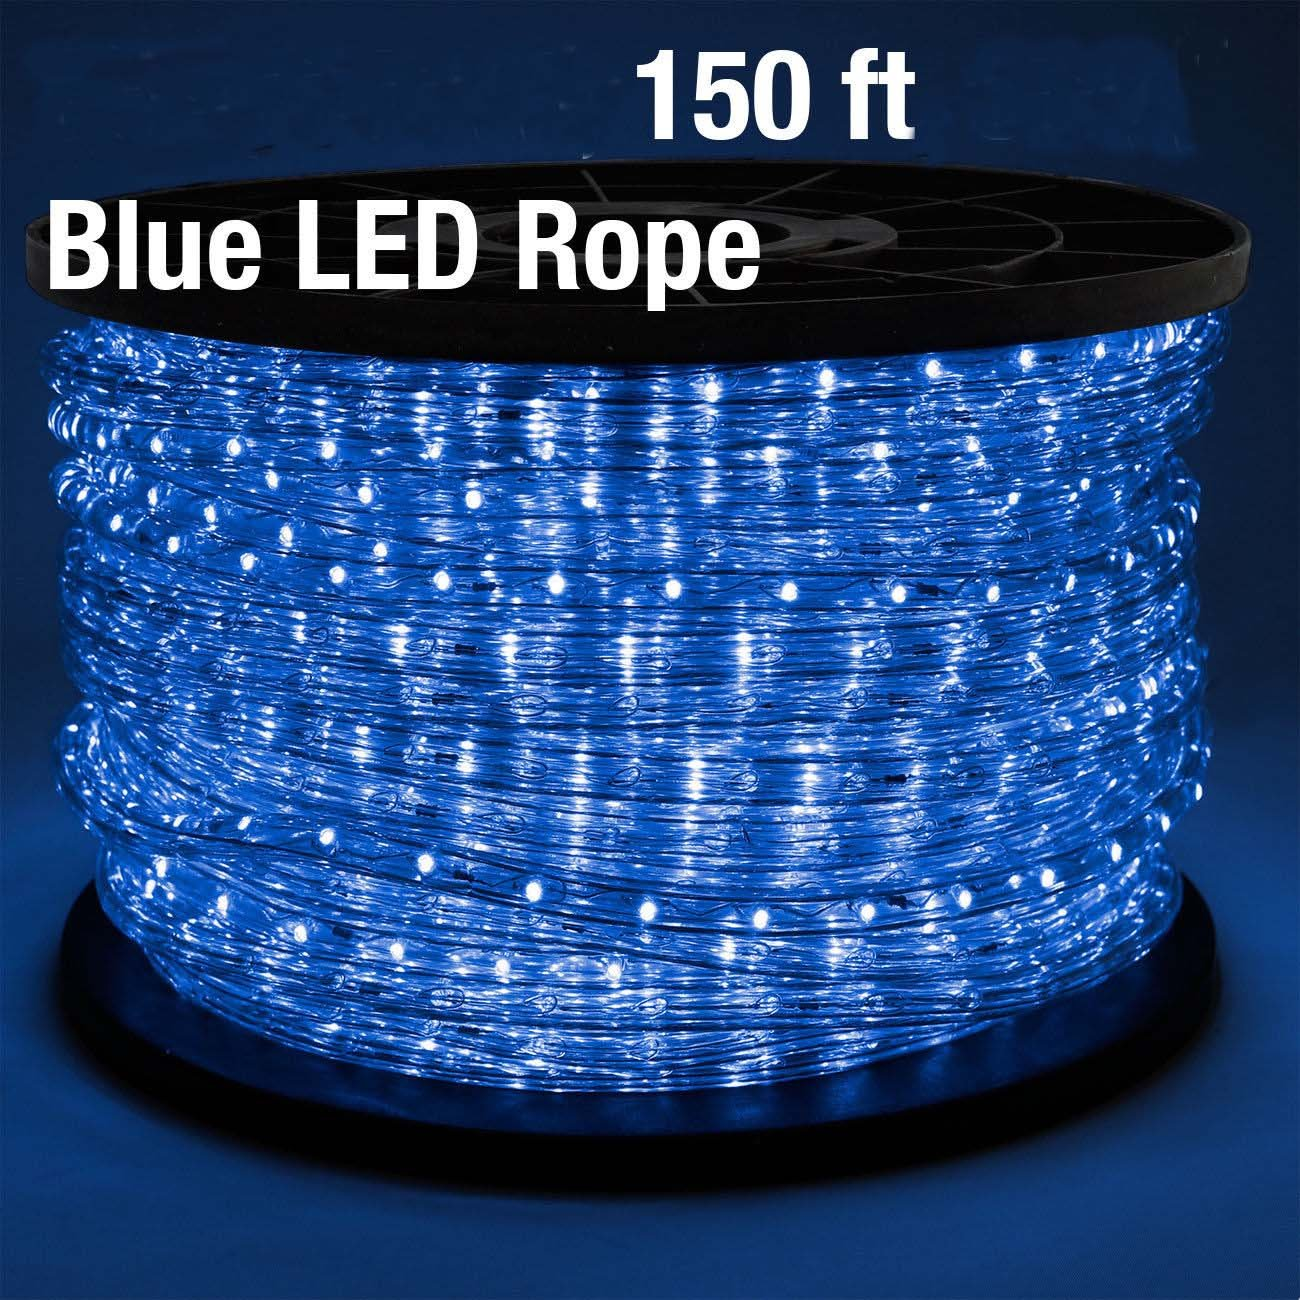 150 Feet BLUE, Flex LED Rope Light 2-Wire Outdoor Home Decoration Party Xmas Lighting 110V